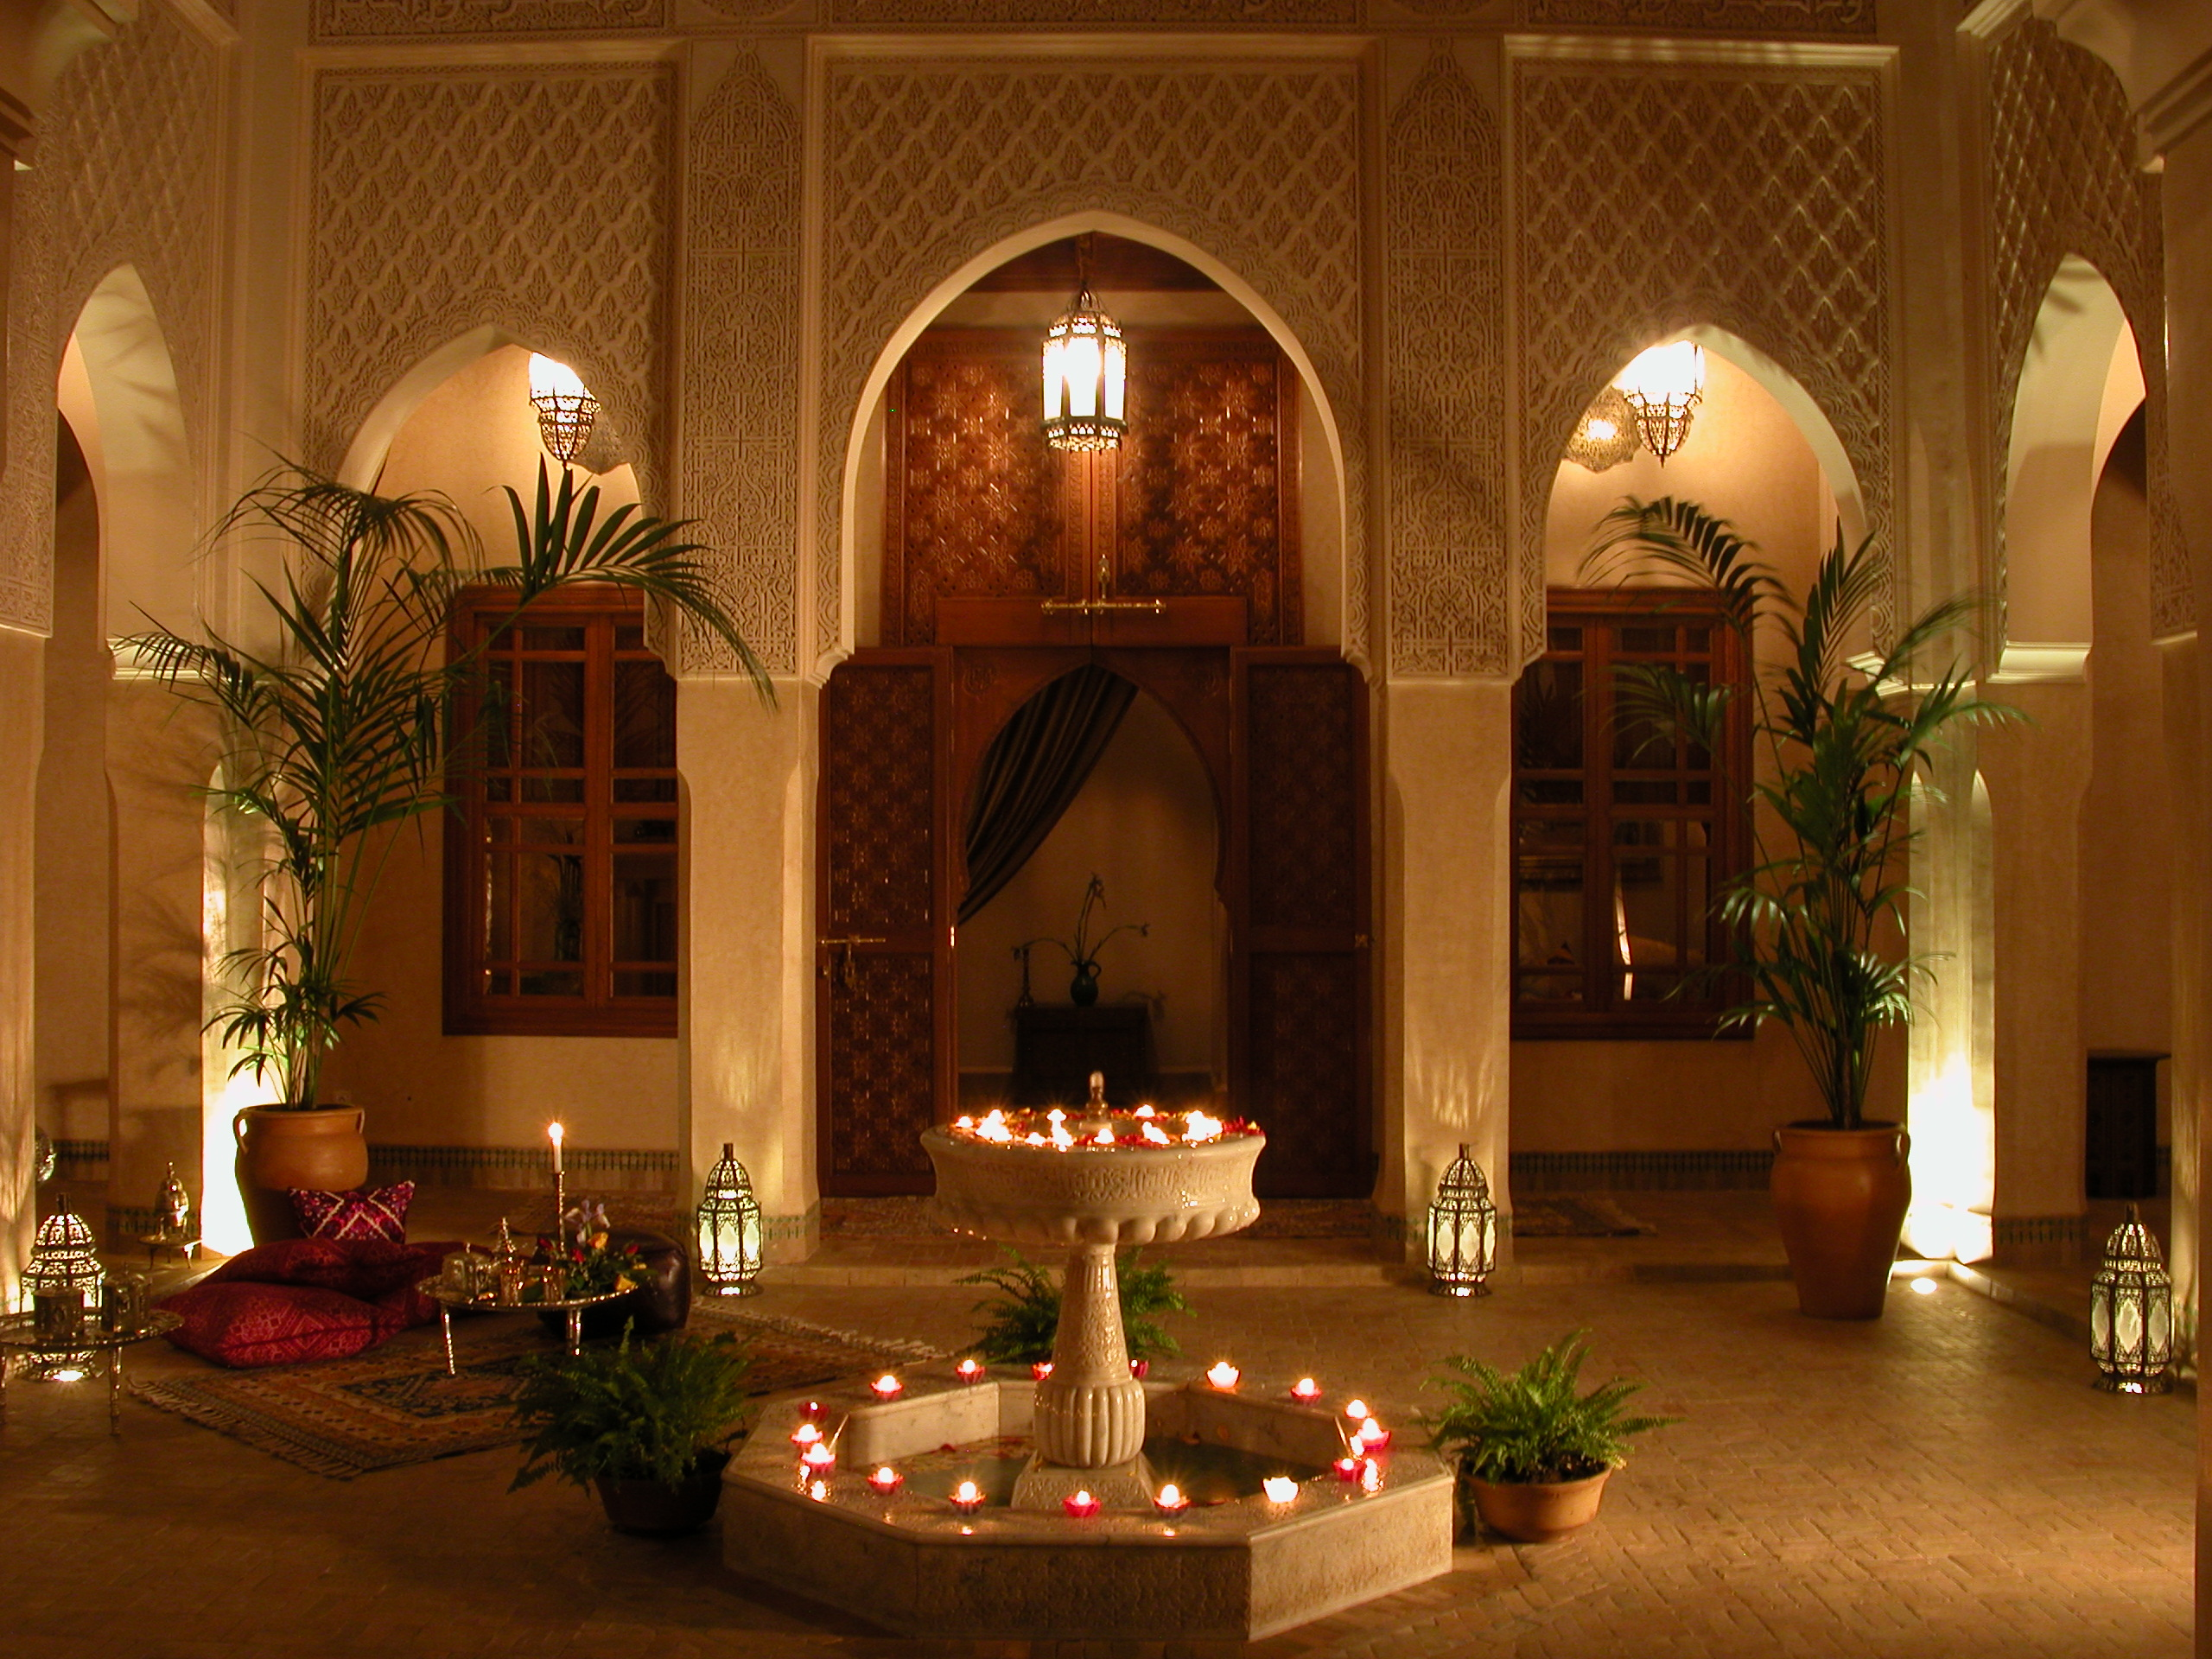 Luxury riads in morocco travel exploration blog travel for Hotel design marrakech